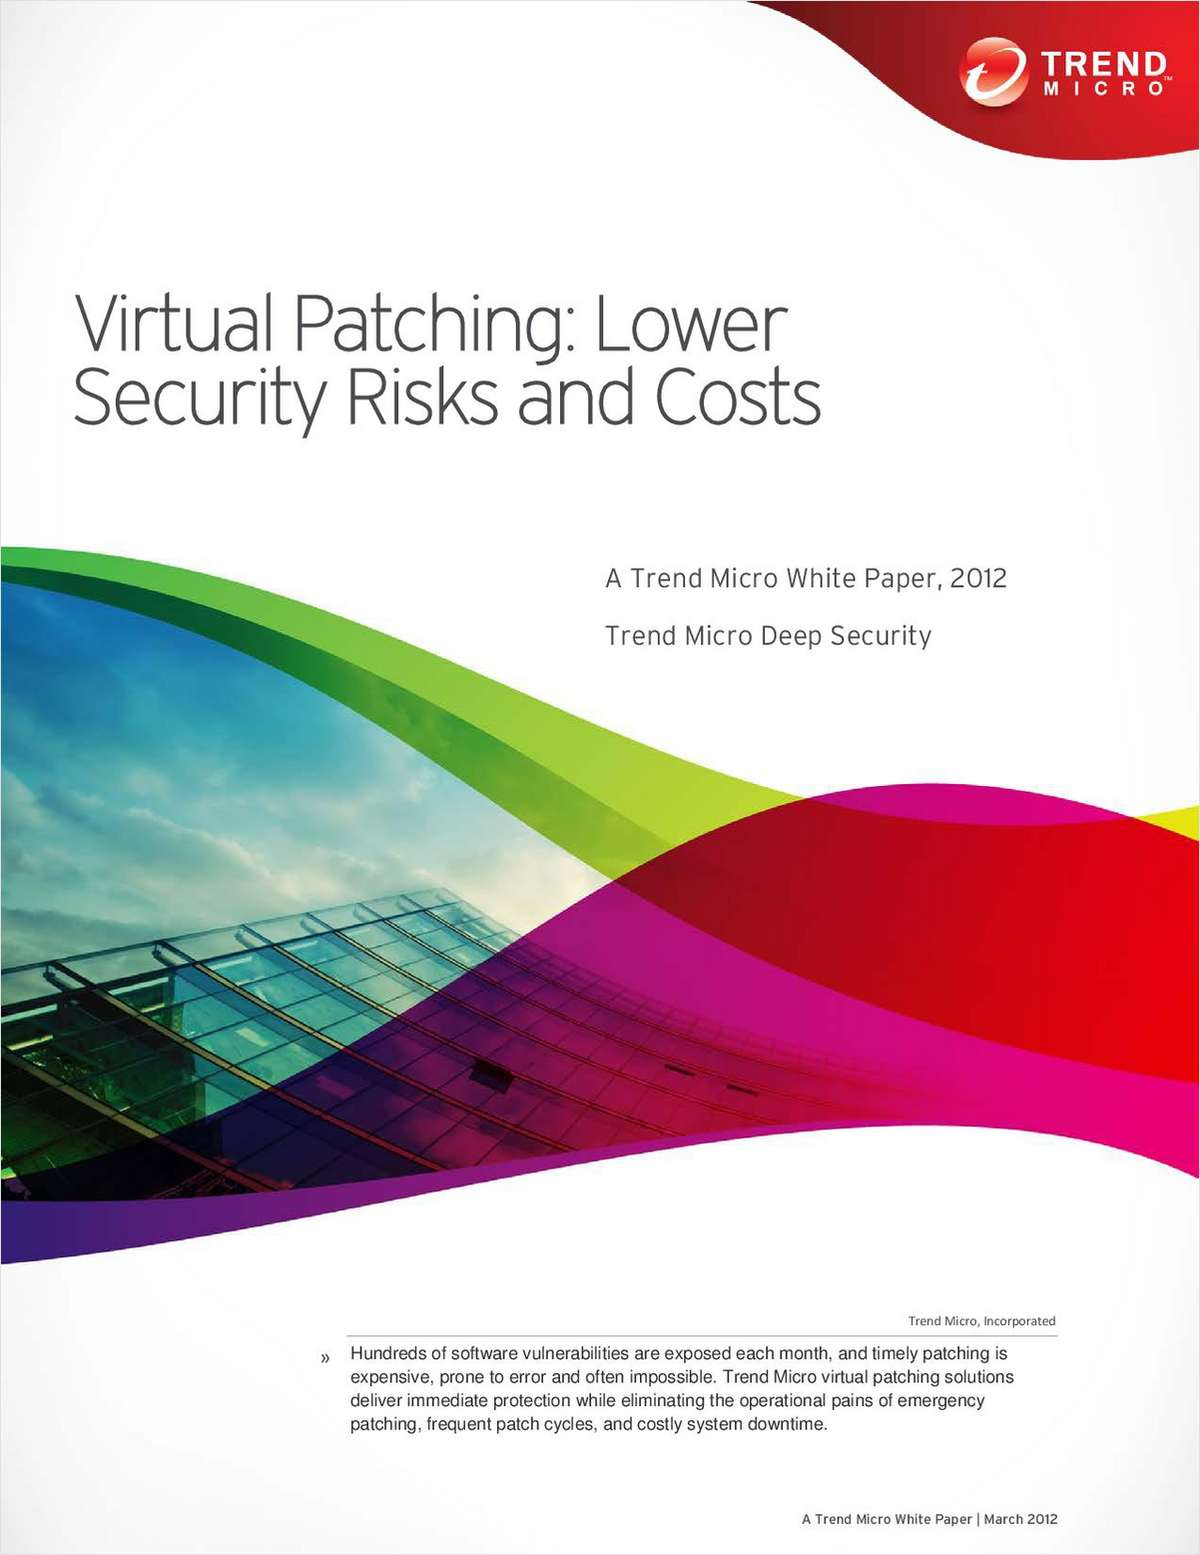 Virtual Patching: Lower Security Risks and Costs